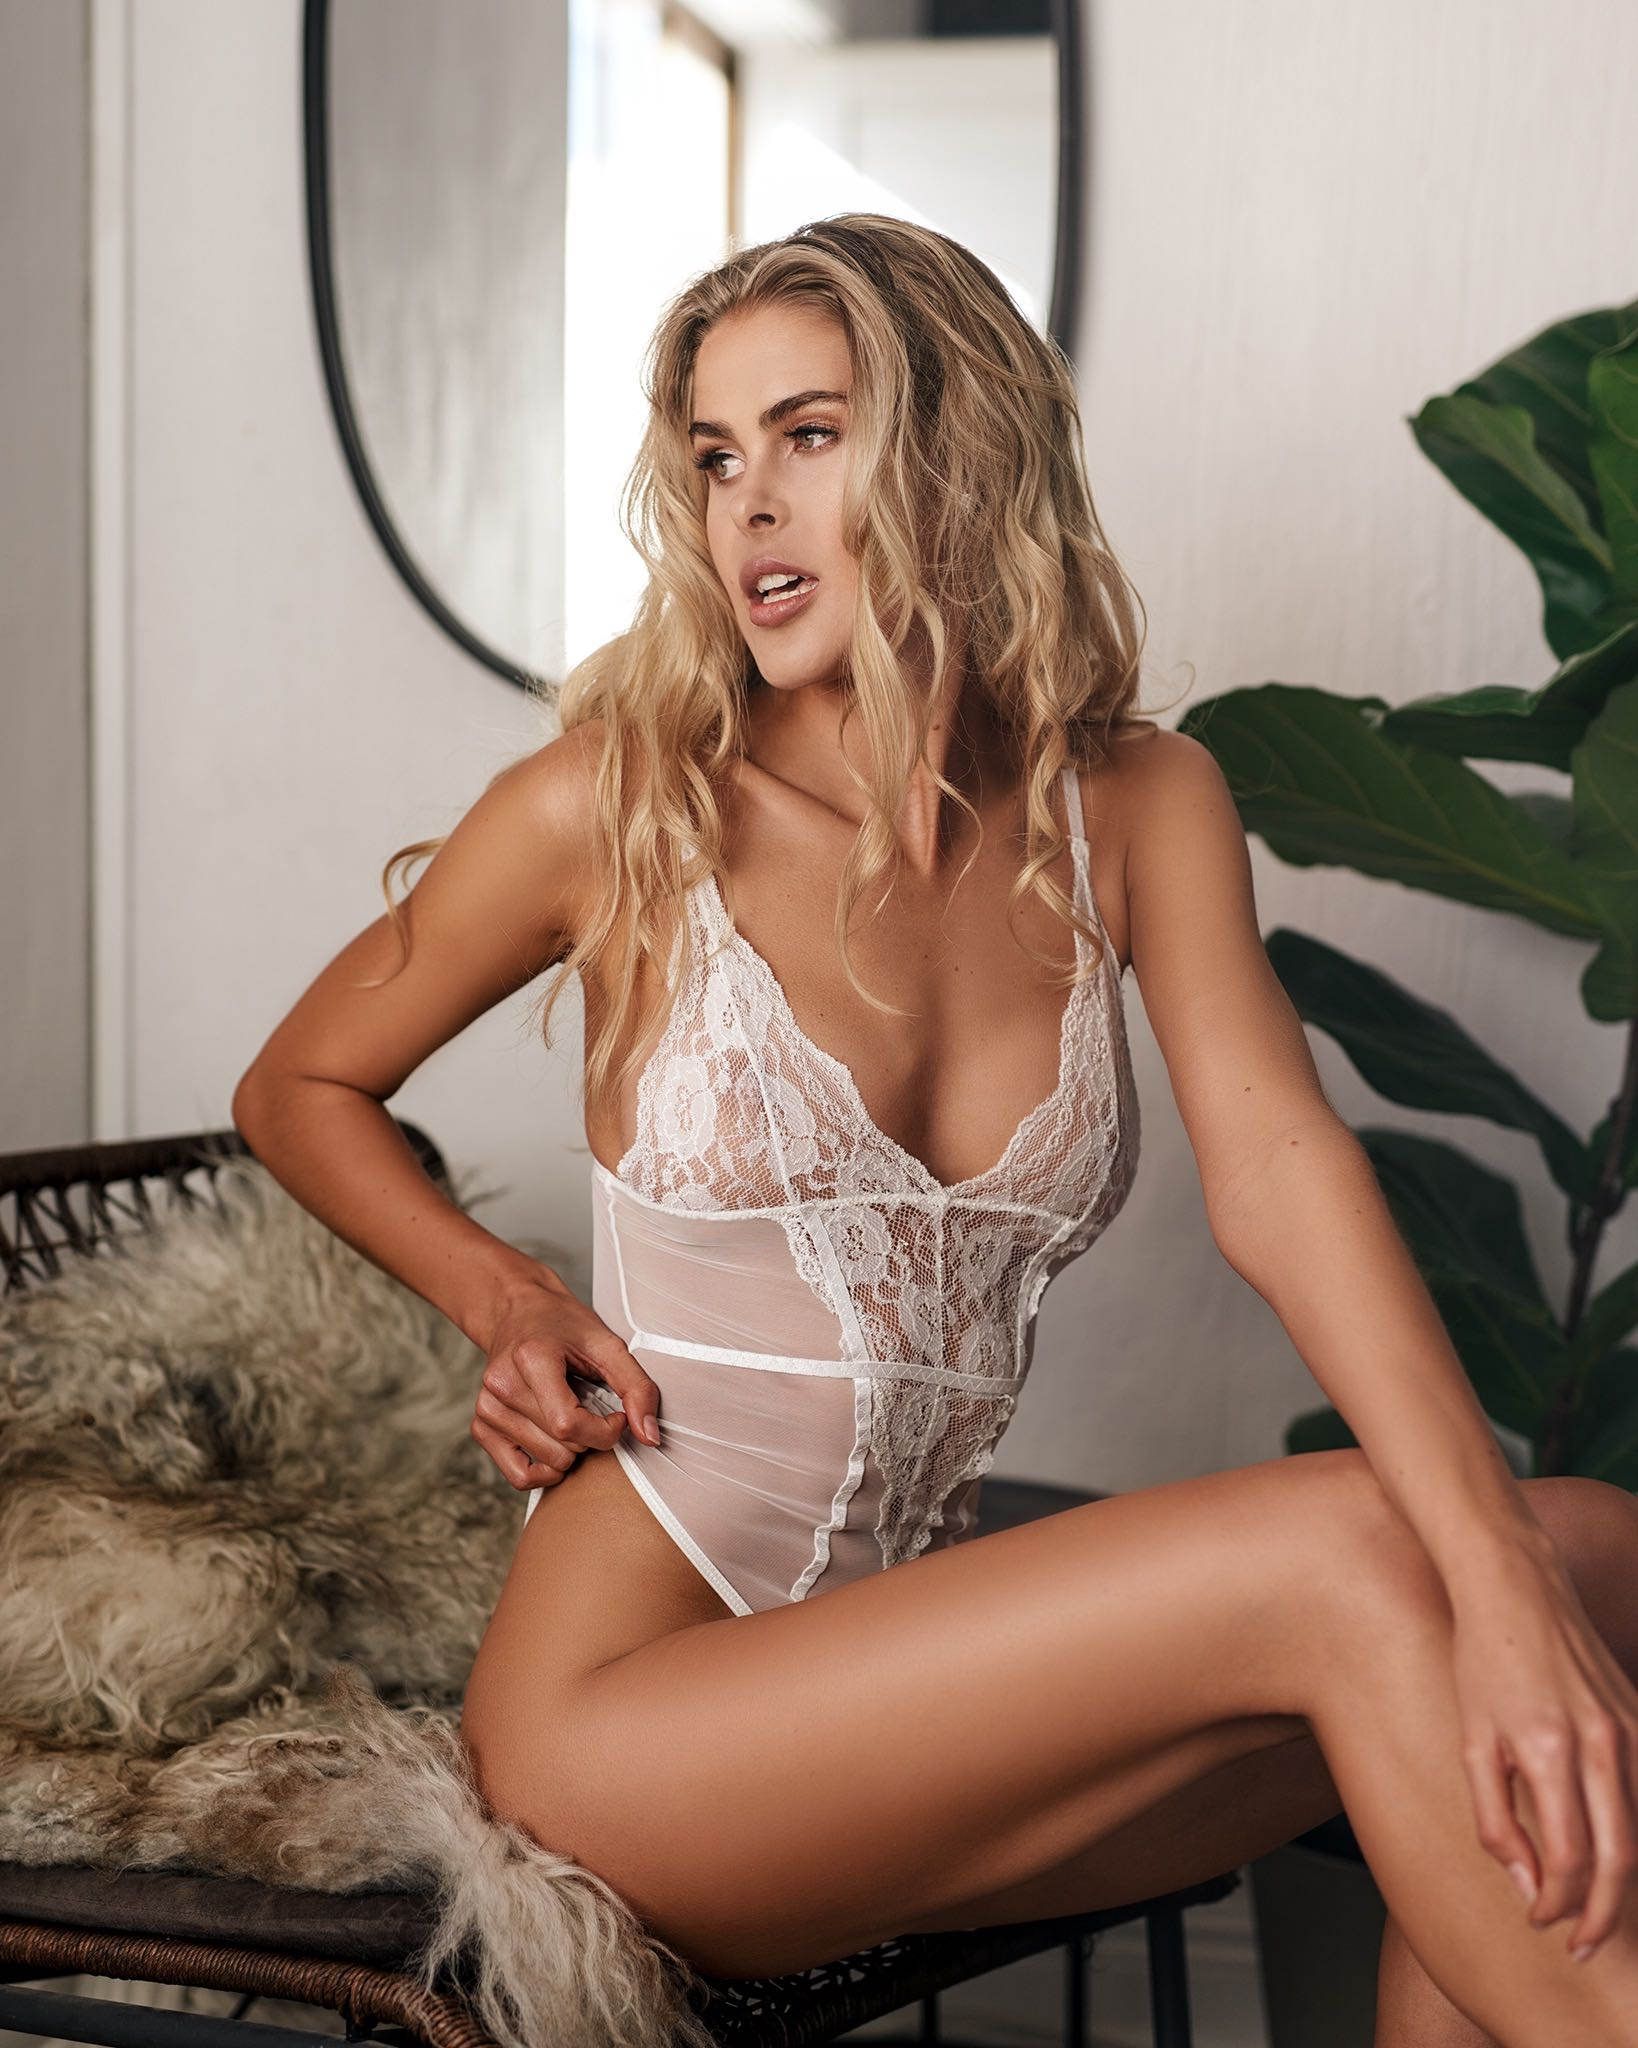 Our South African Babes feature with Katelyn Barkhuizen